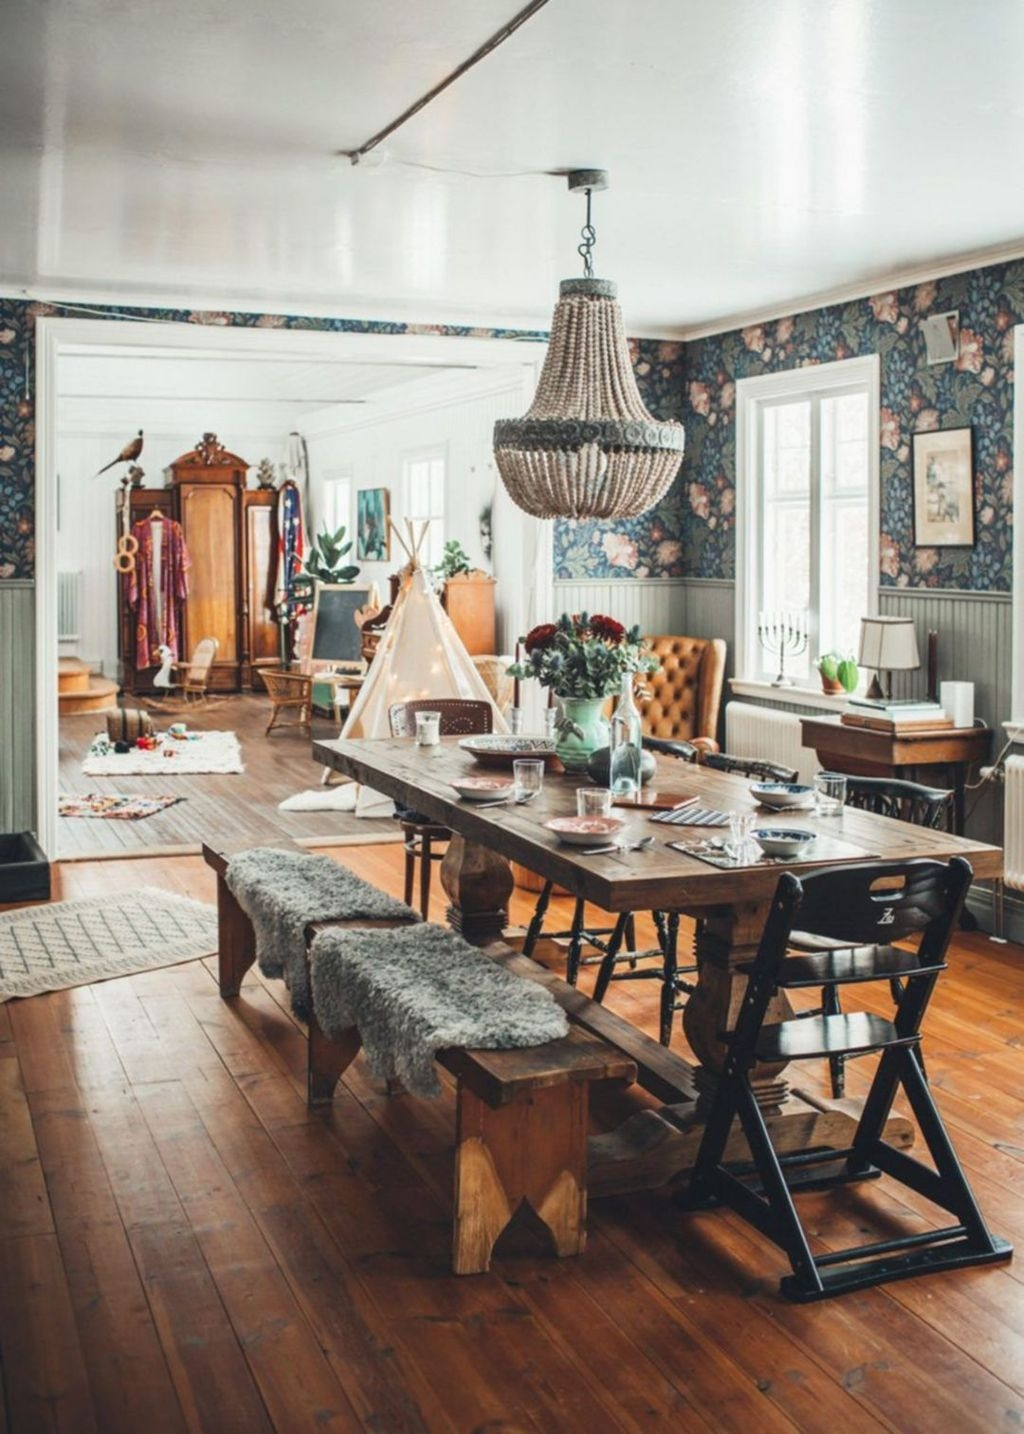 Unordinary Dining Room Design Ideas With Bohemian Style21